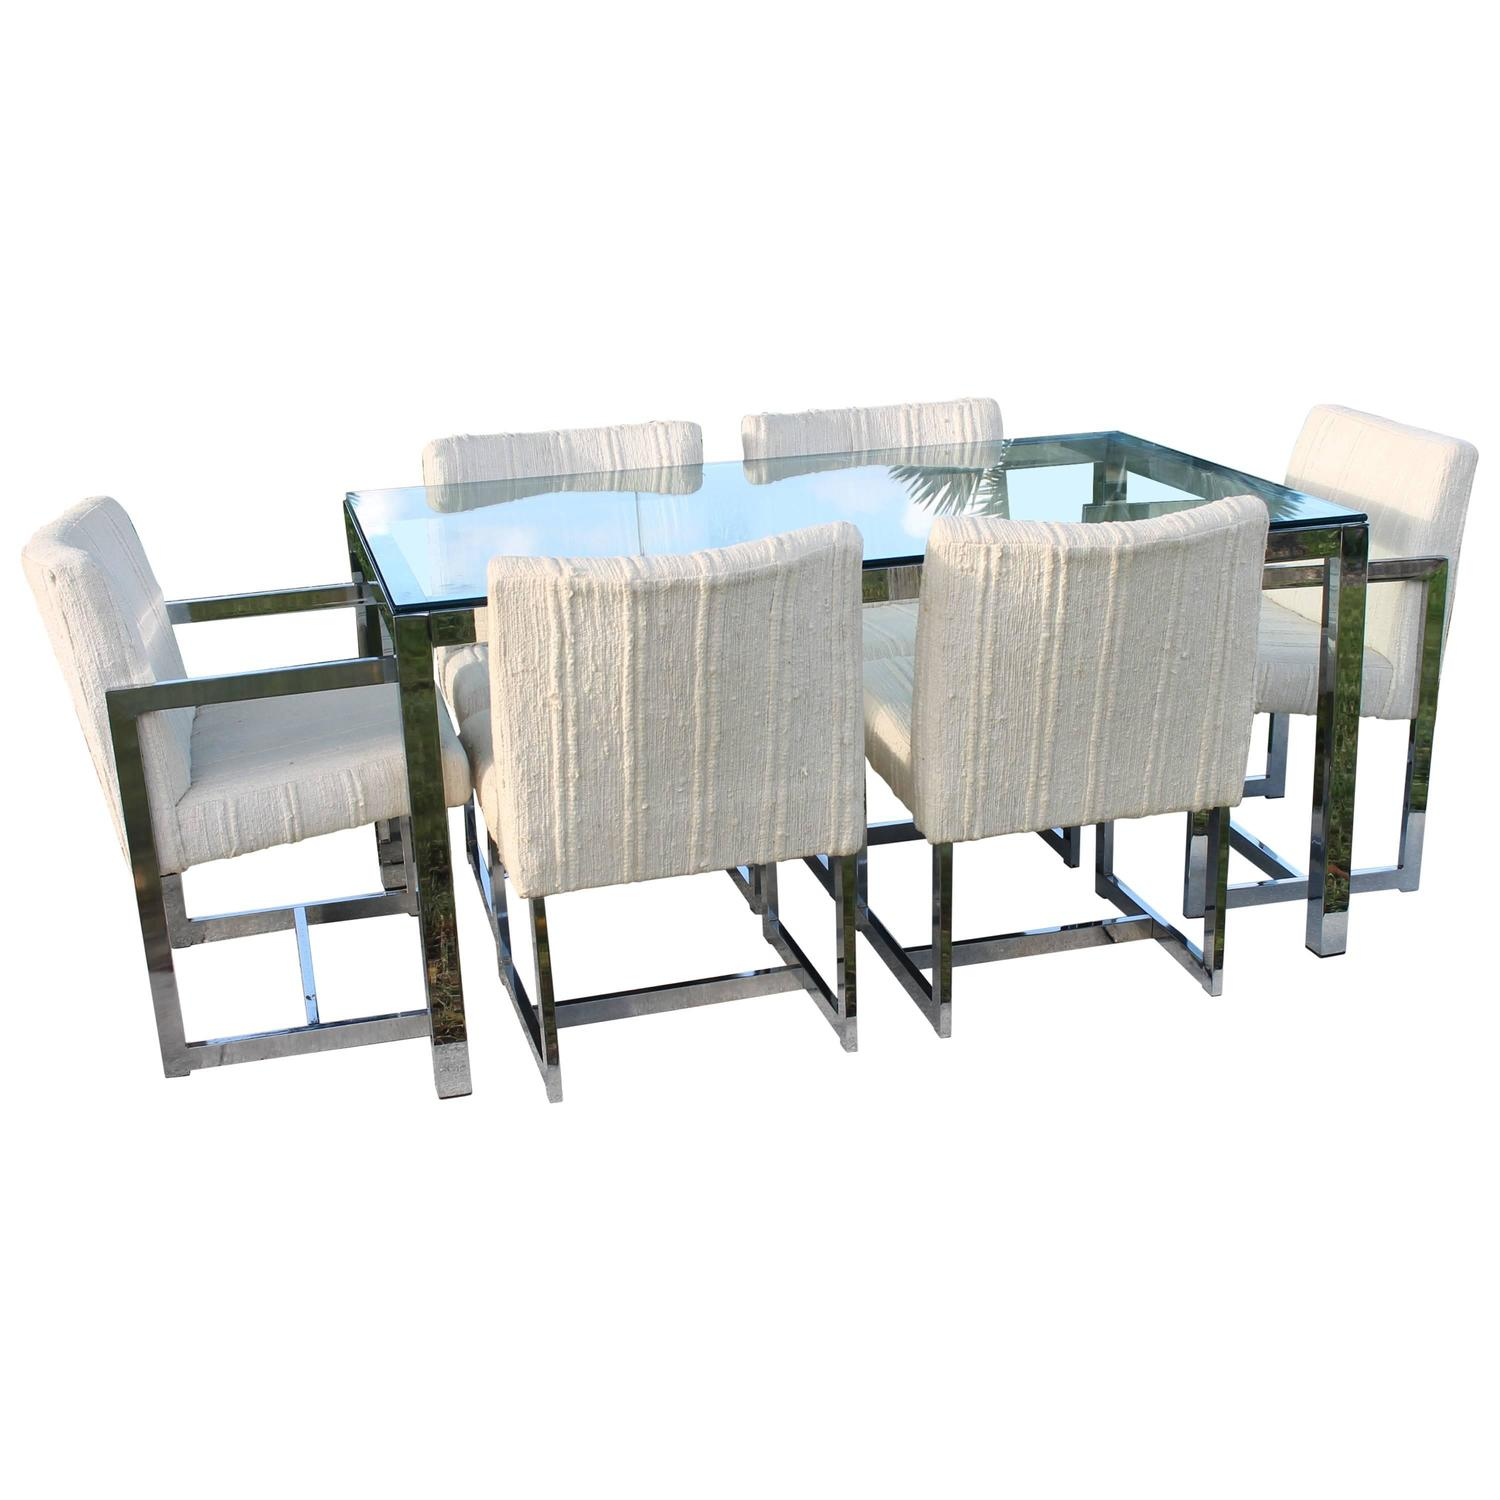 Chrome Dining Room Sets: Midcentury Chrome Table And Six Chairs Dining Set By Milo